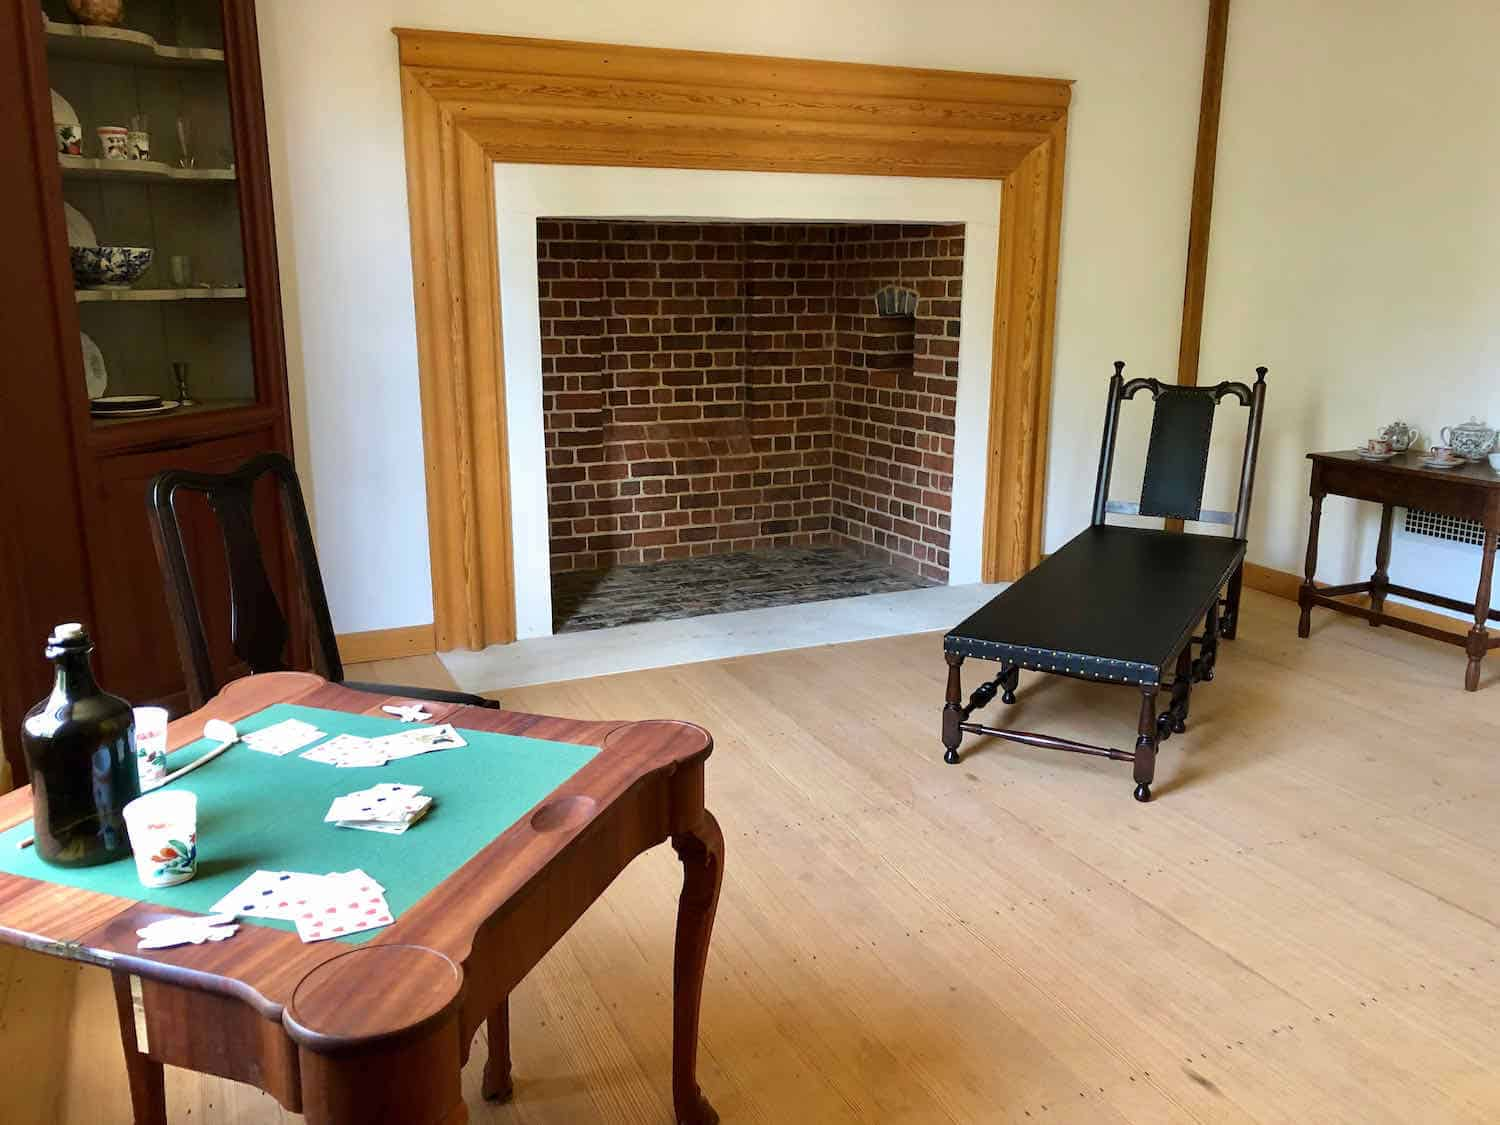 Colonial room with a large fireplace, wood chase and card table.